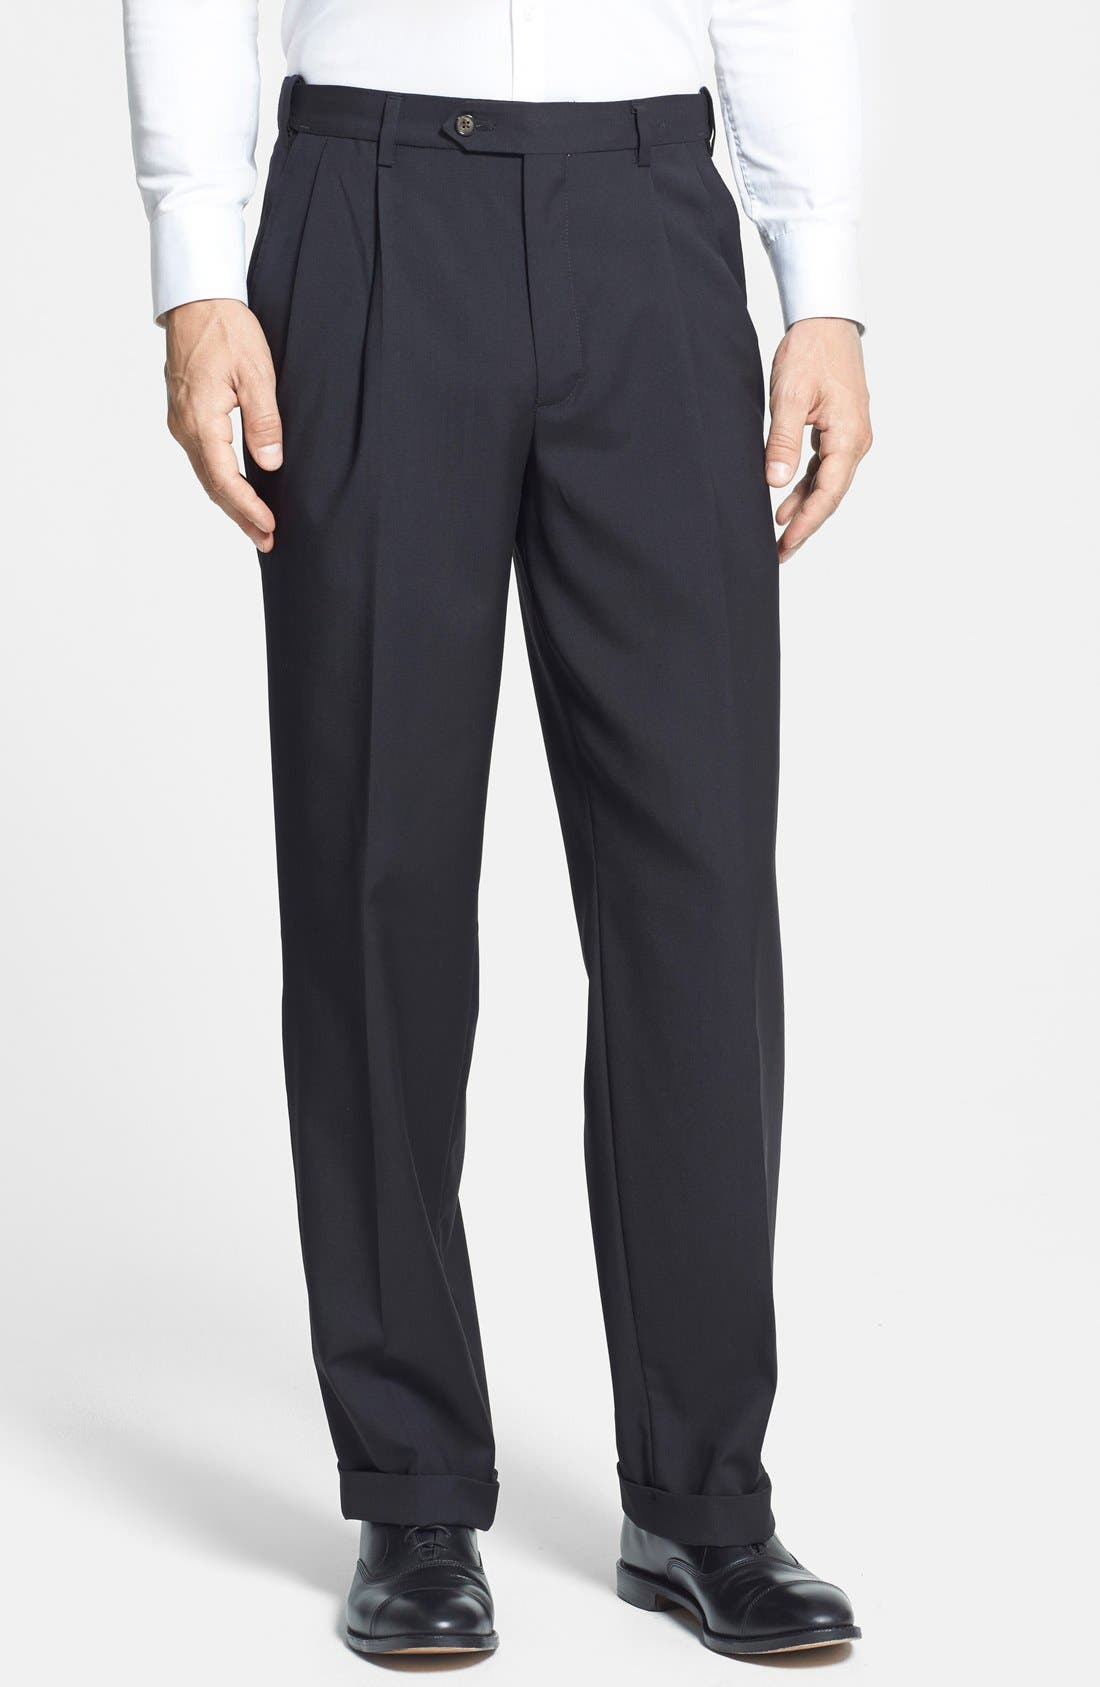 BERLE Self Sizer Waist Pleated Trousers, Main, color, BLACK